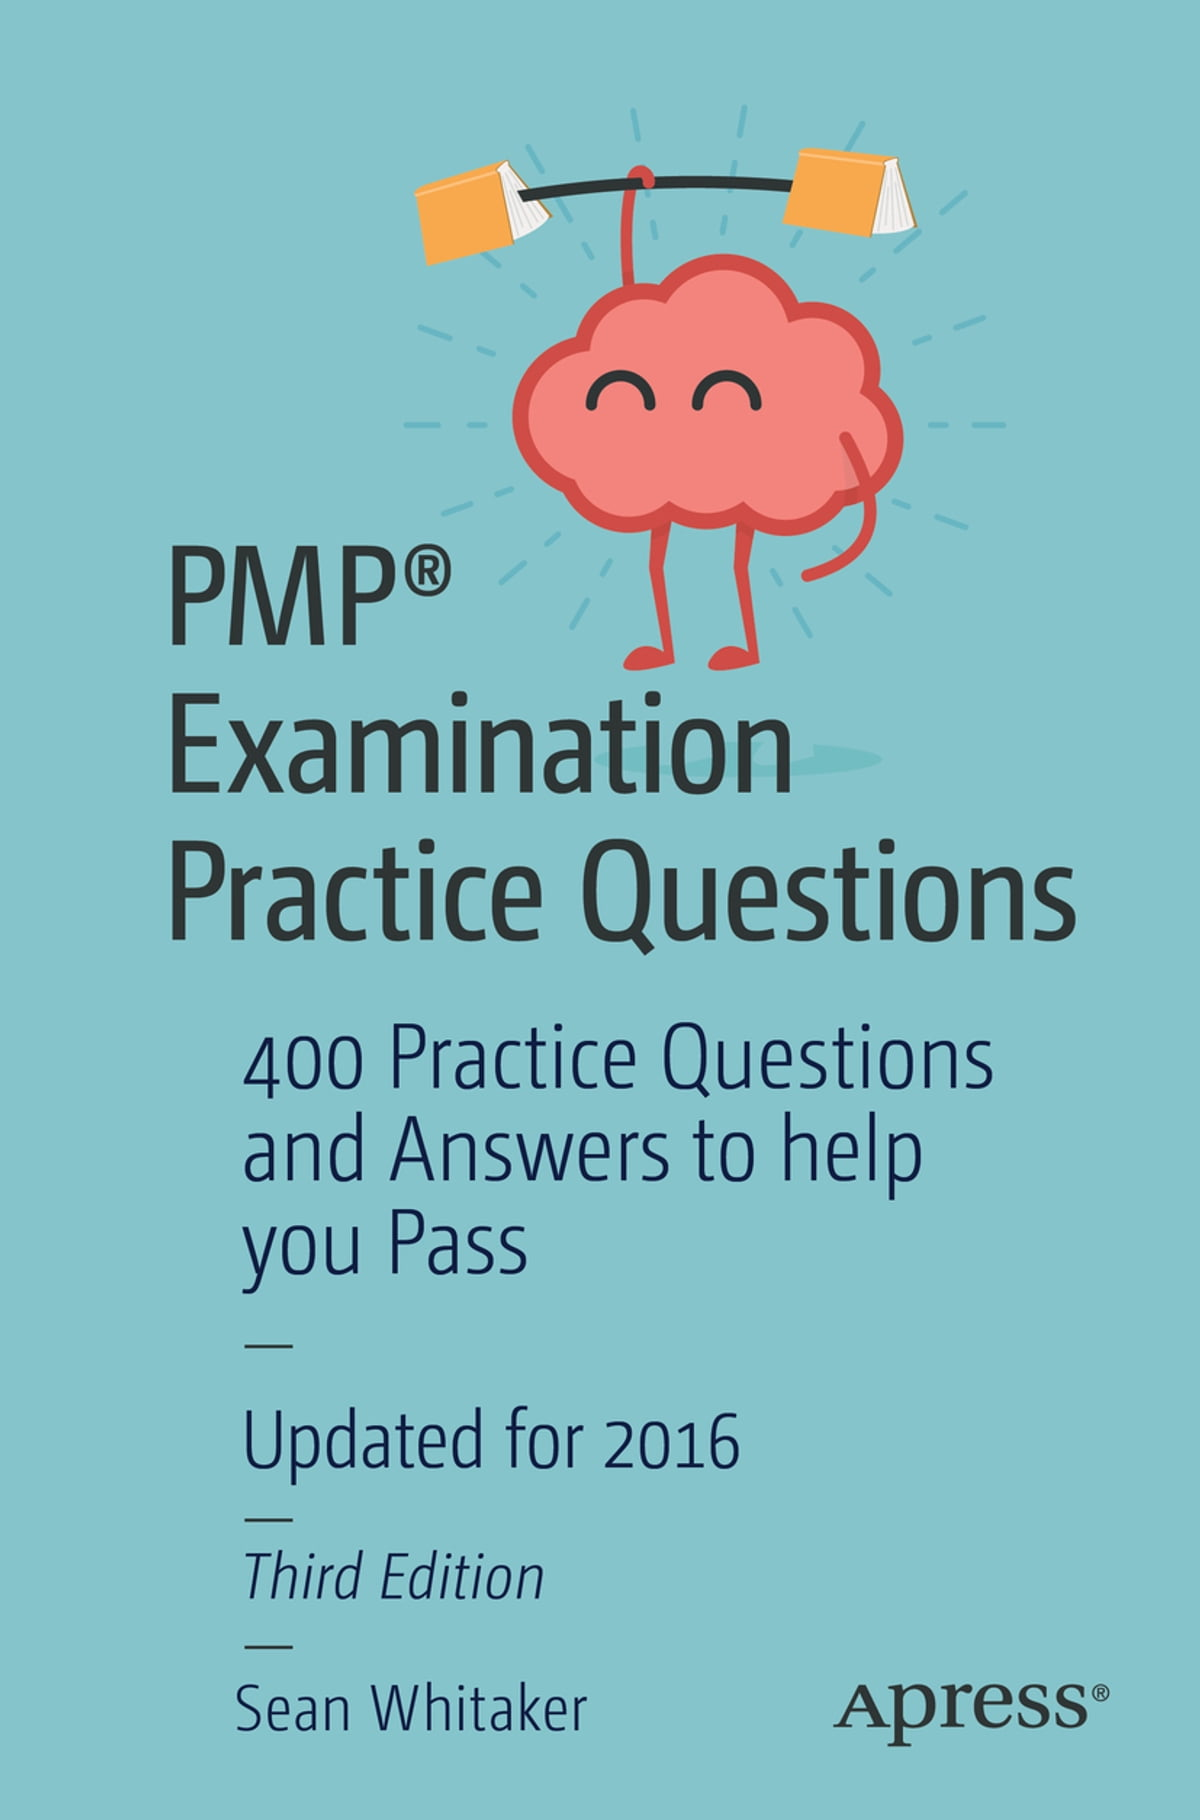 PMP® Examination Practice Questions eBook by Sean Whitaker - 9781484218839  | Rakuten Kobo